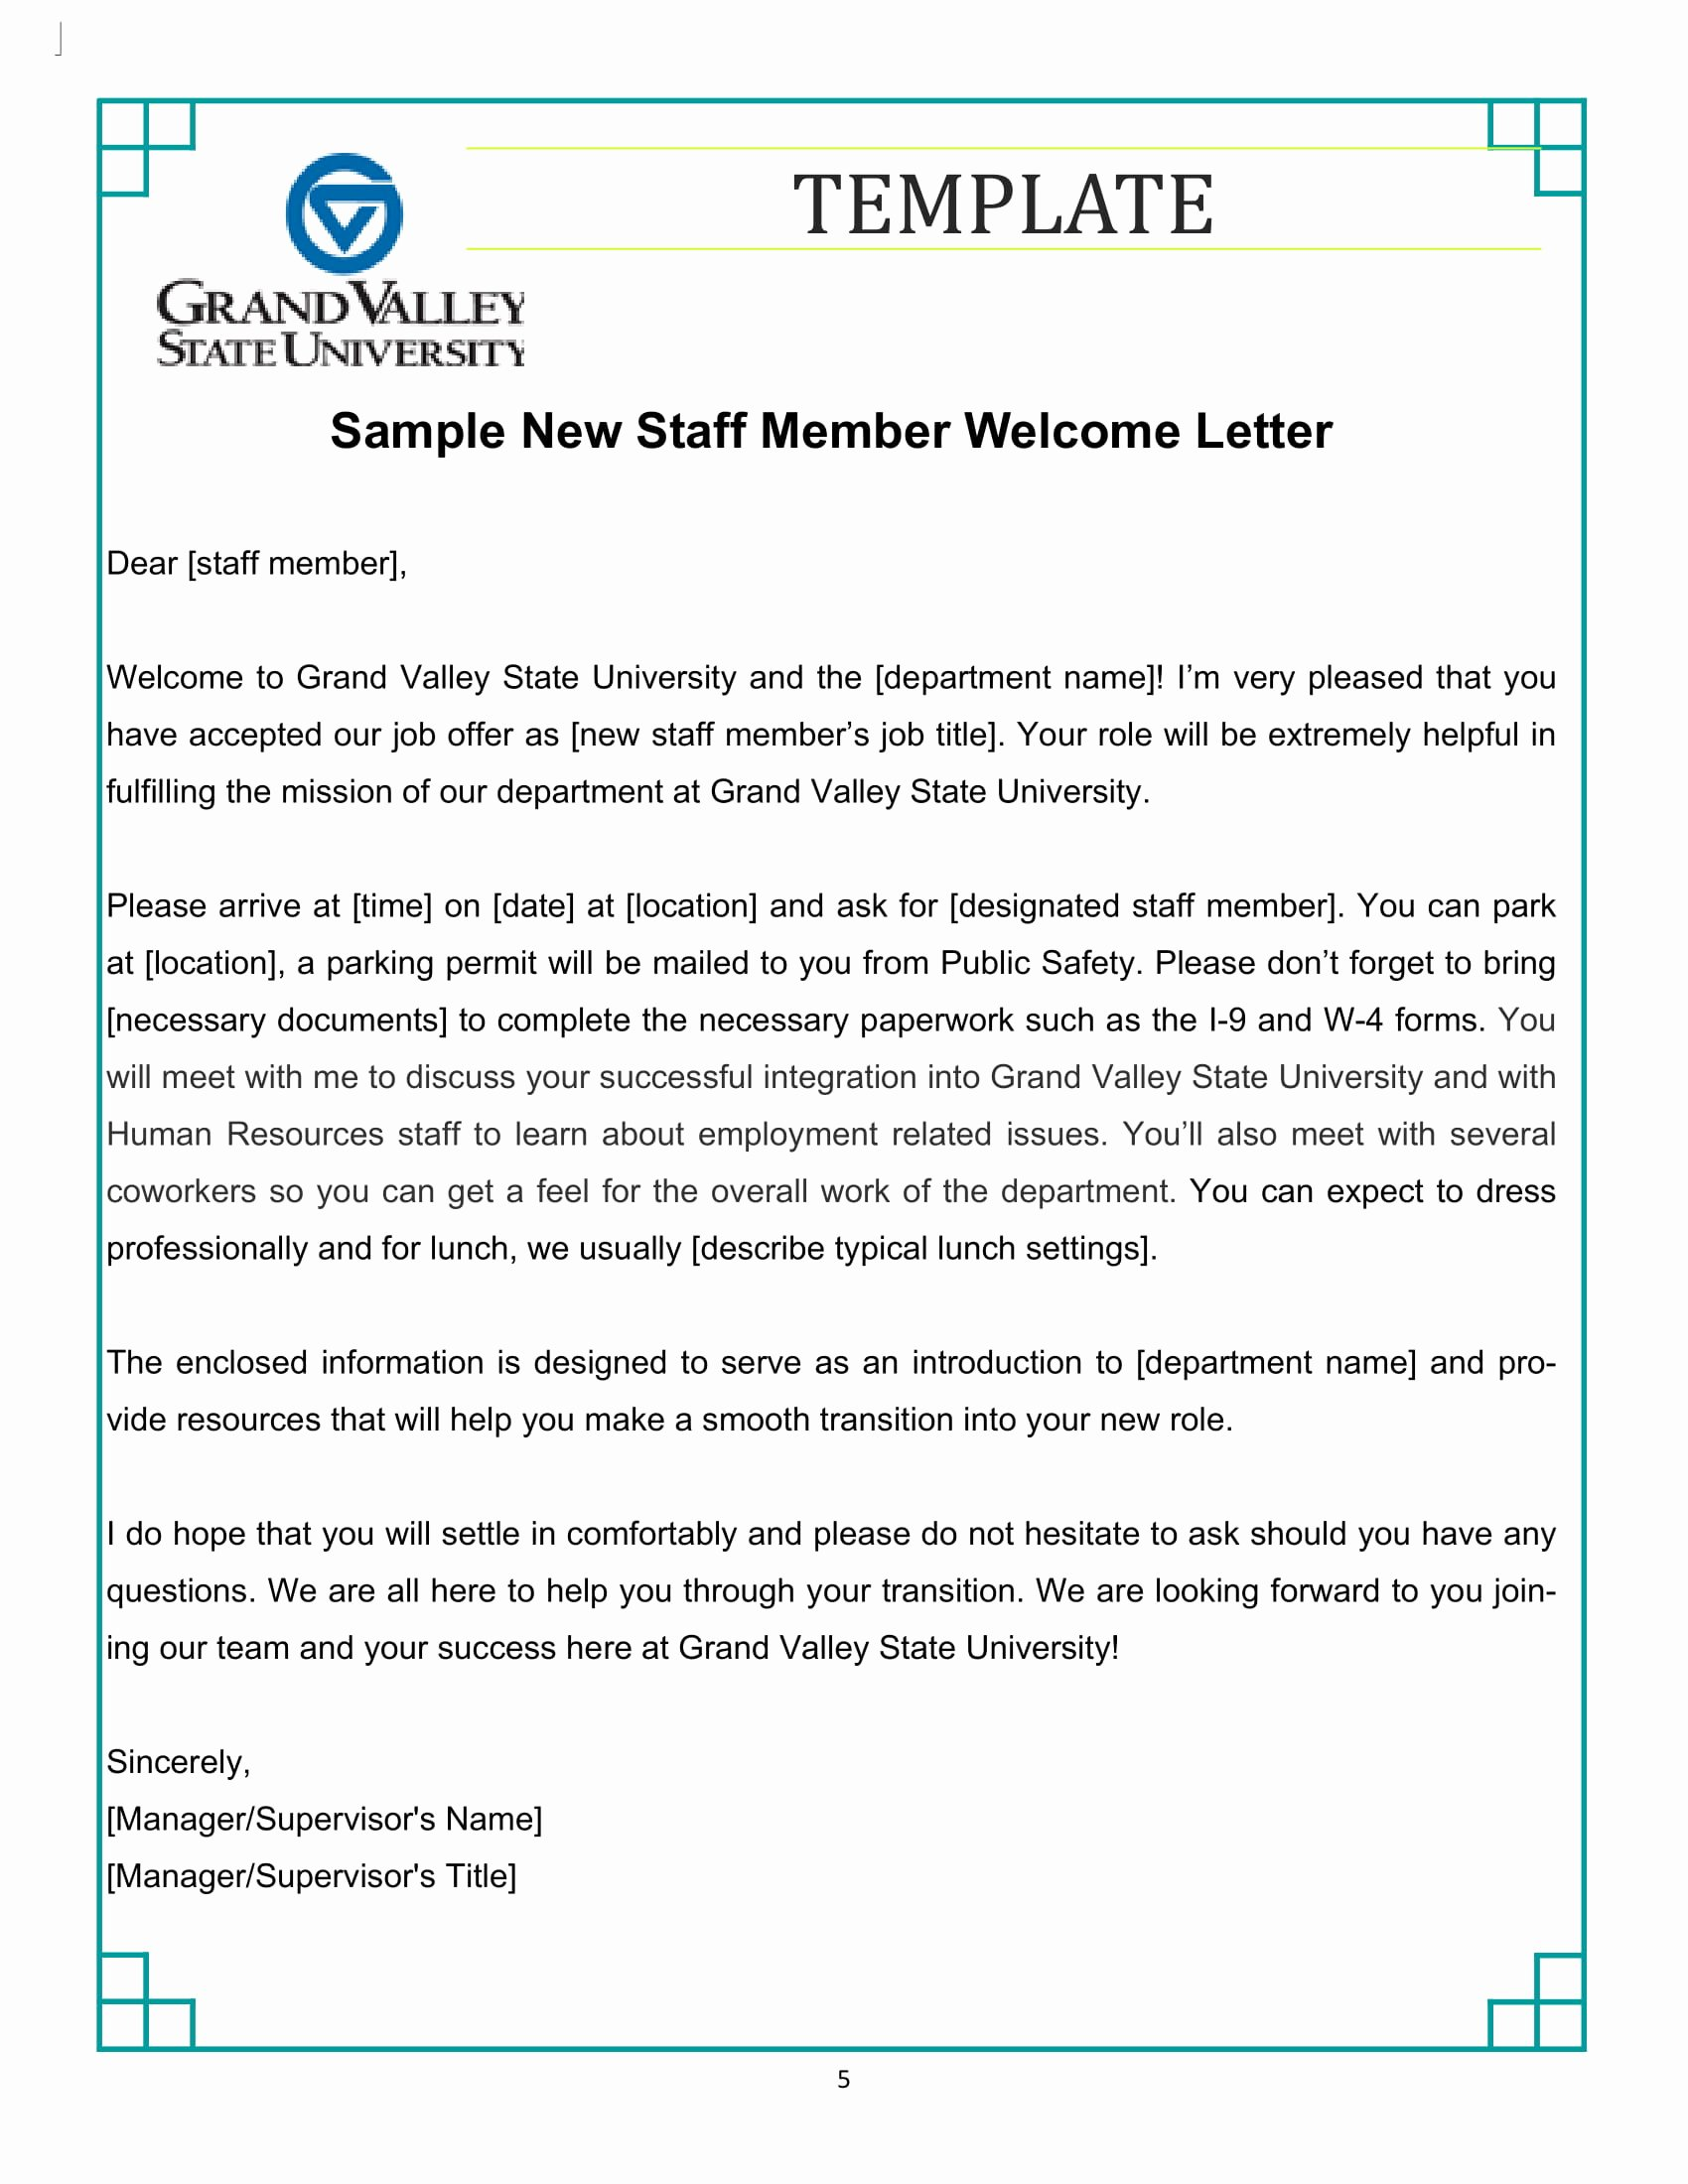 Examples Of Welcome Letters Unique 9 New Hire Wel E Letter Examples Pdf